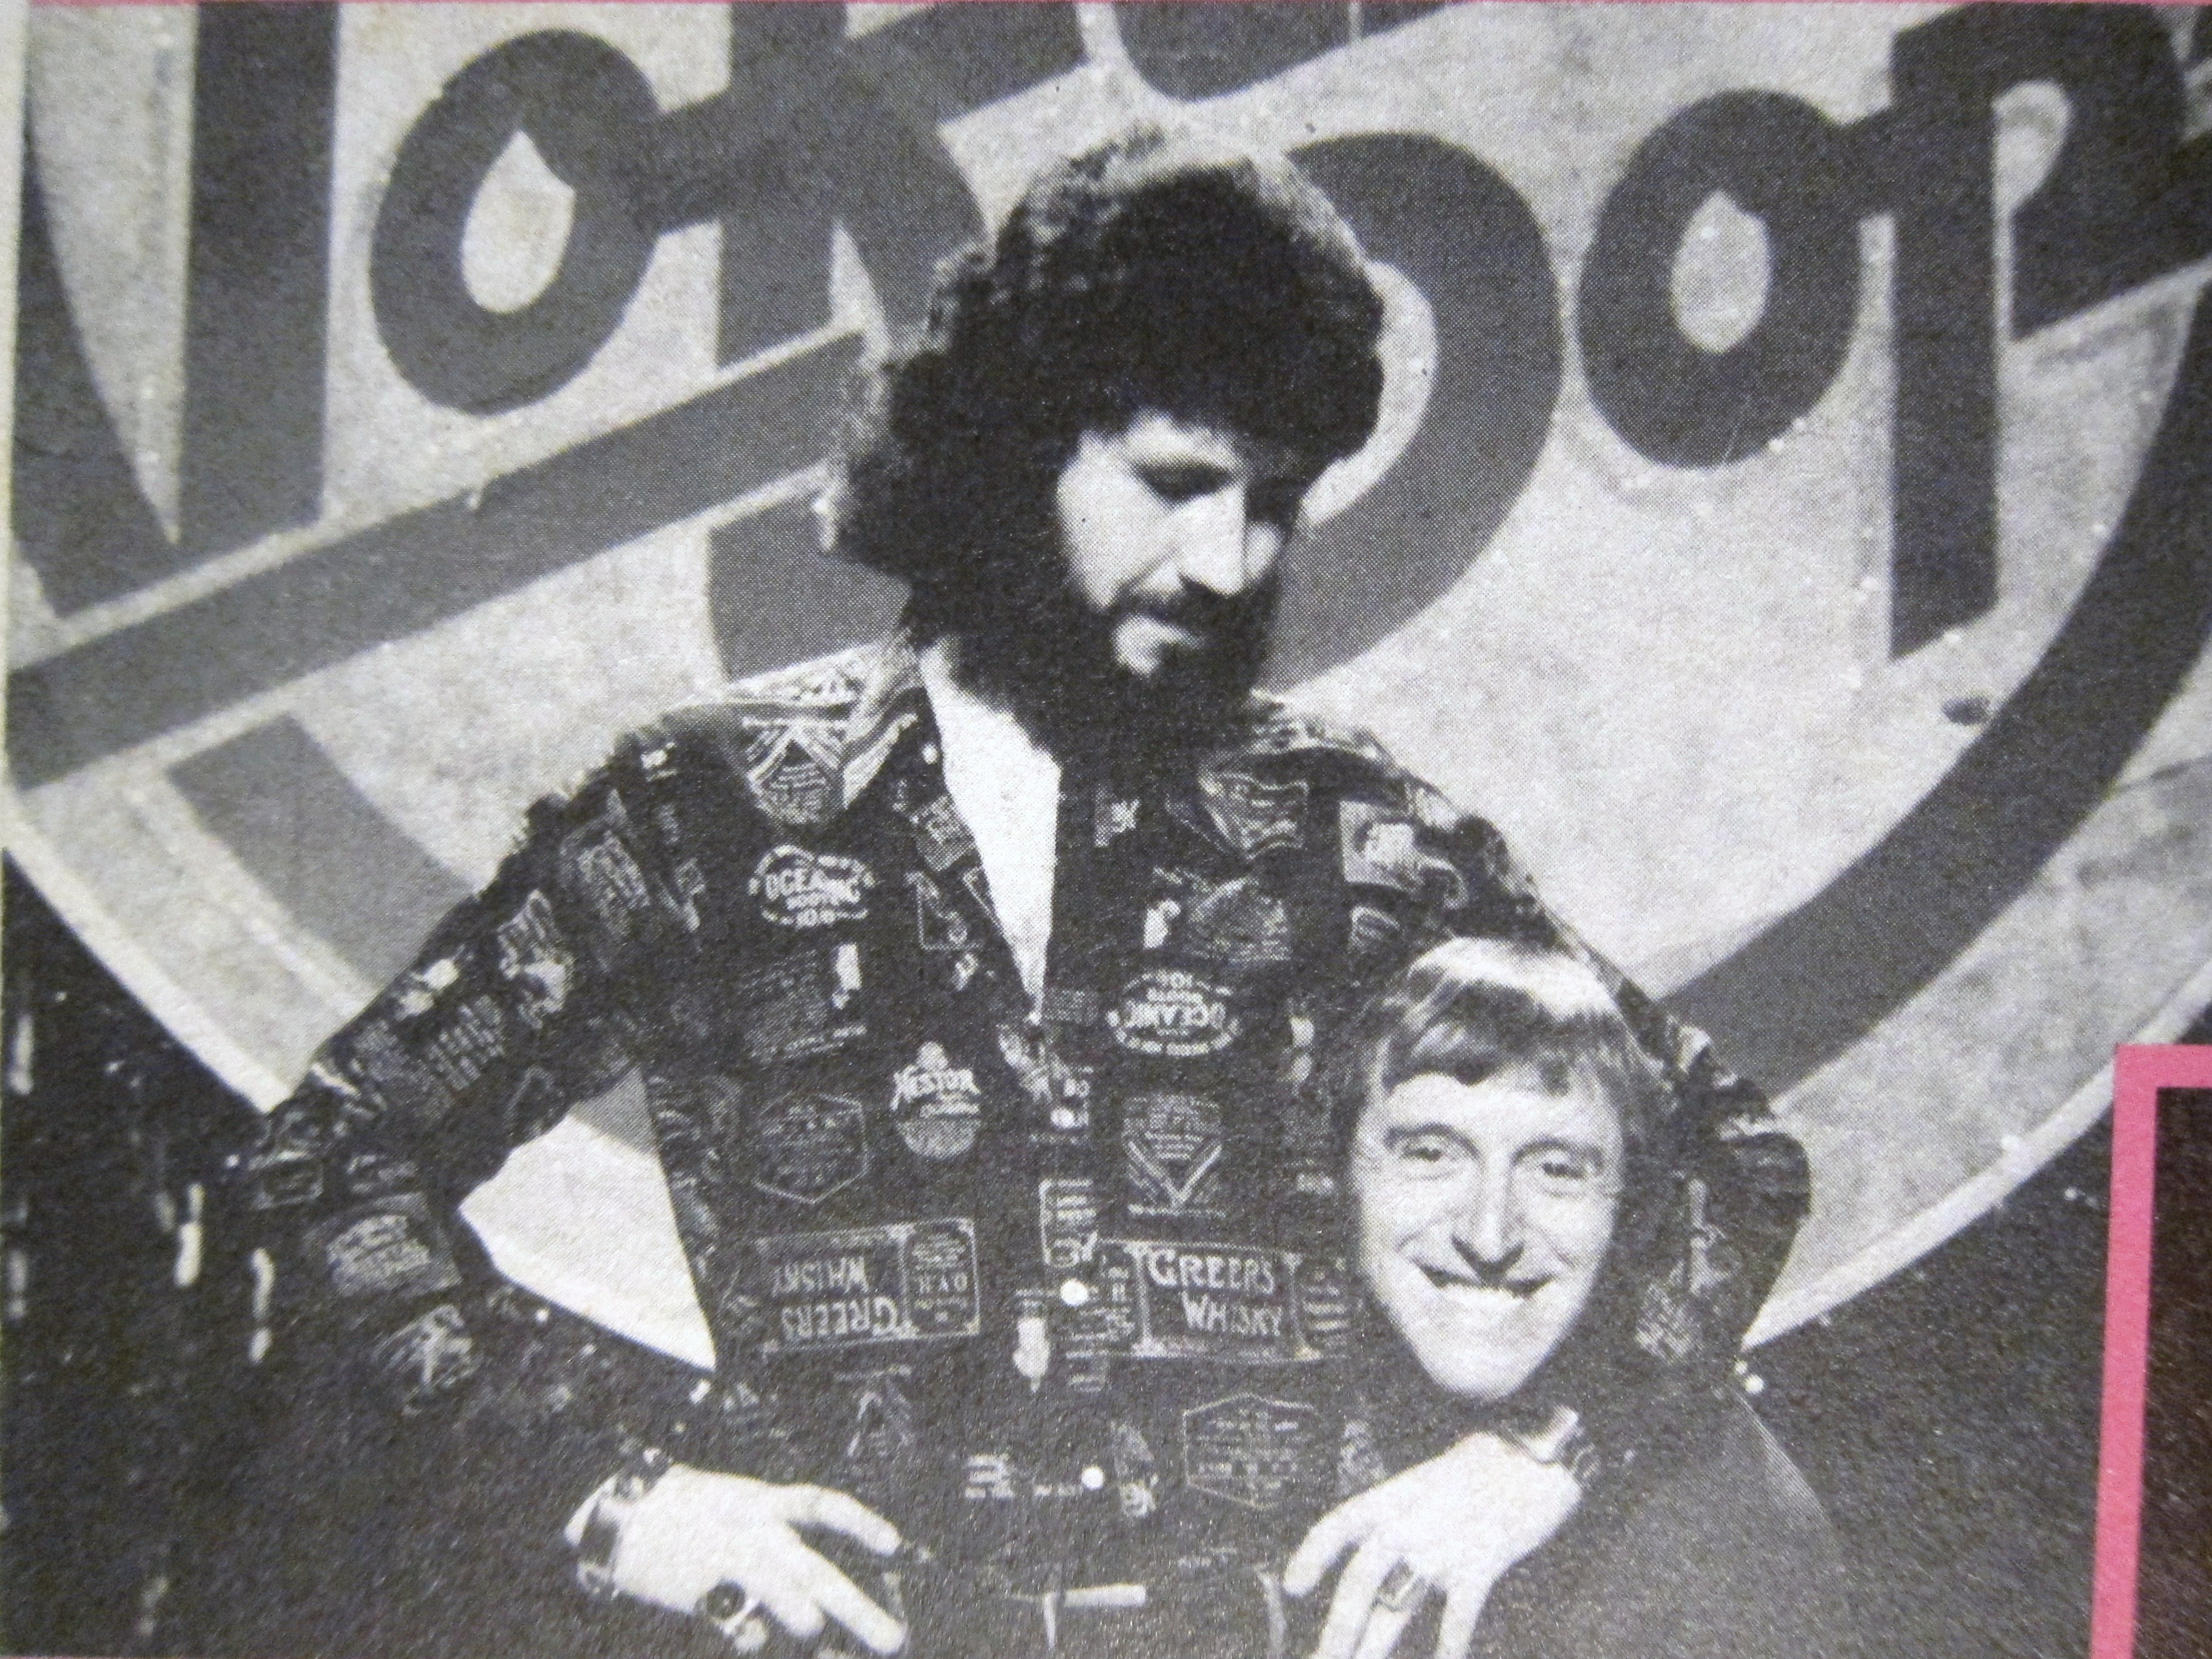 Dave Lee Travis And Jimmy Savile Every Record Tells A Story